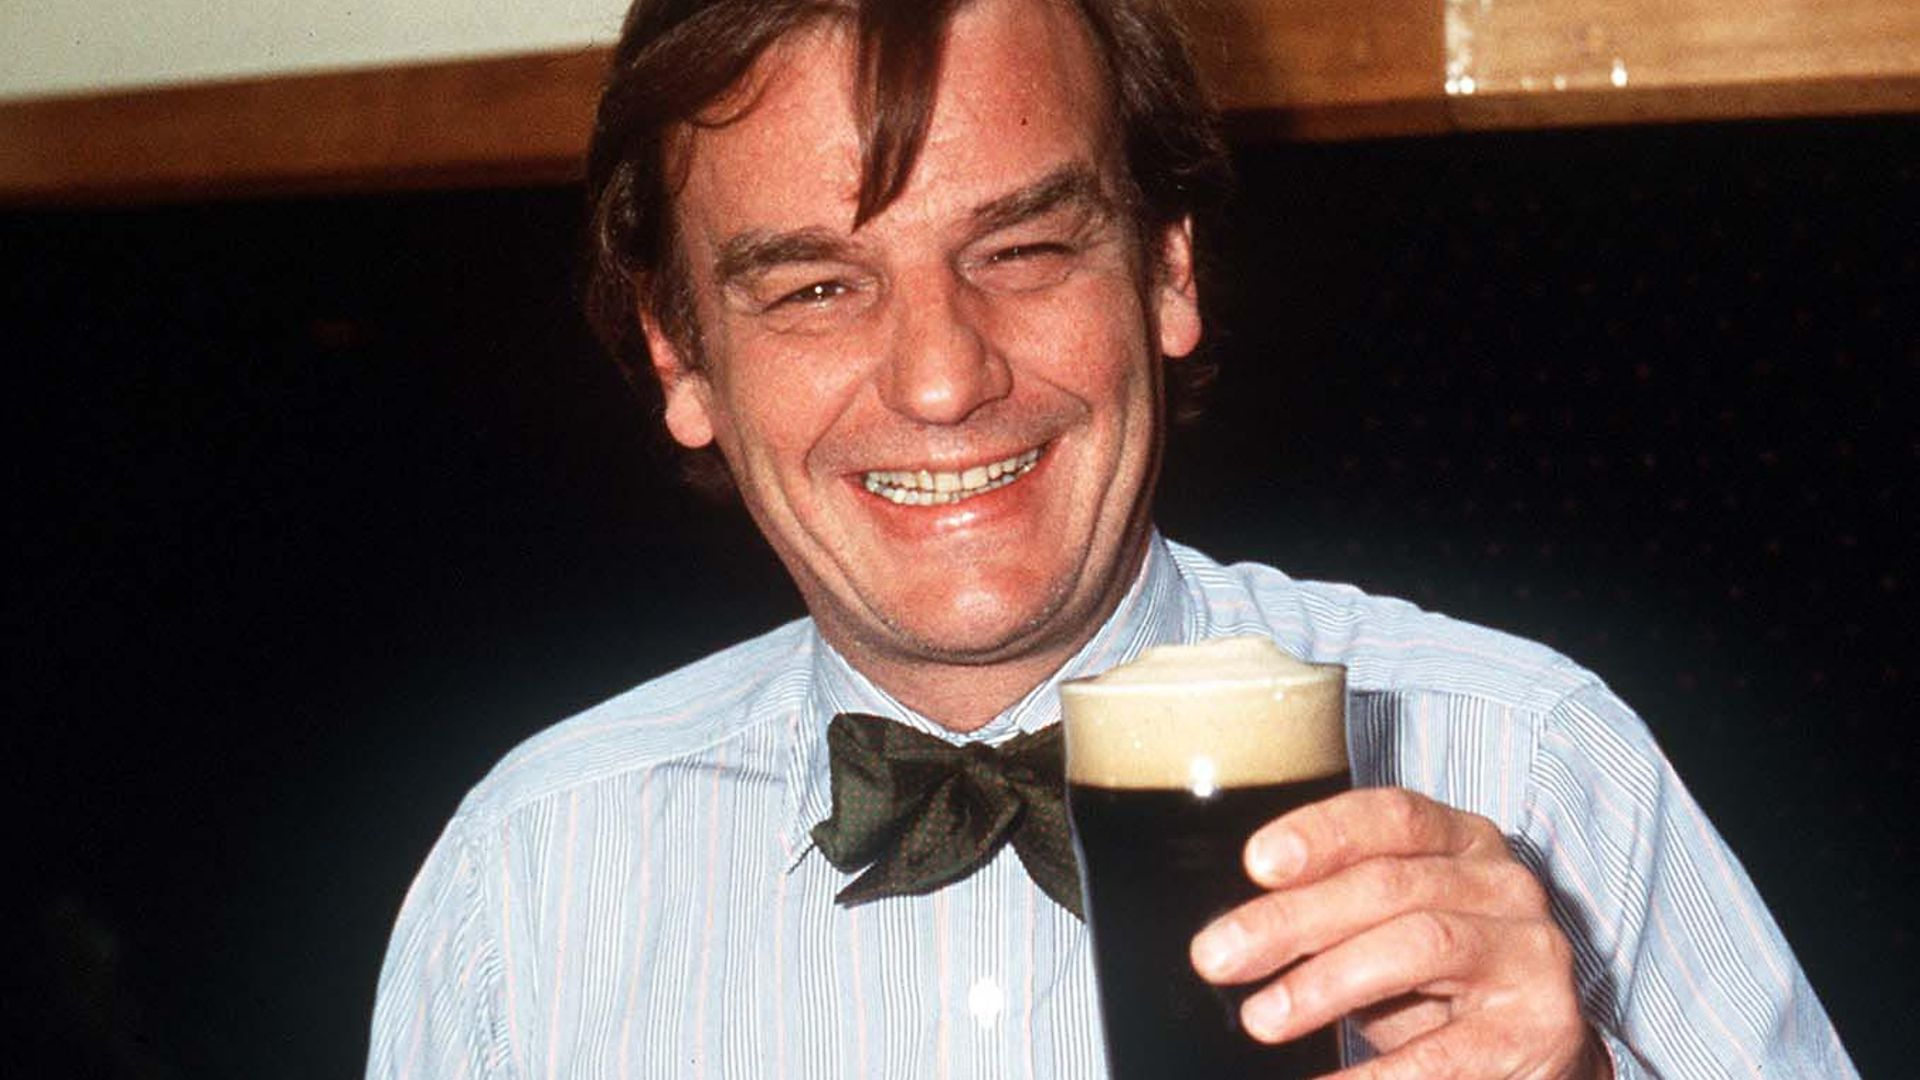 Keith Floyd in 1988 - Credit: Photo by Photoshot/Getty Images